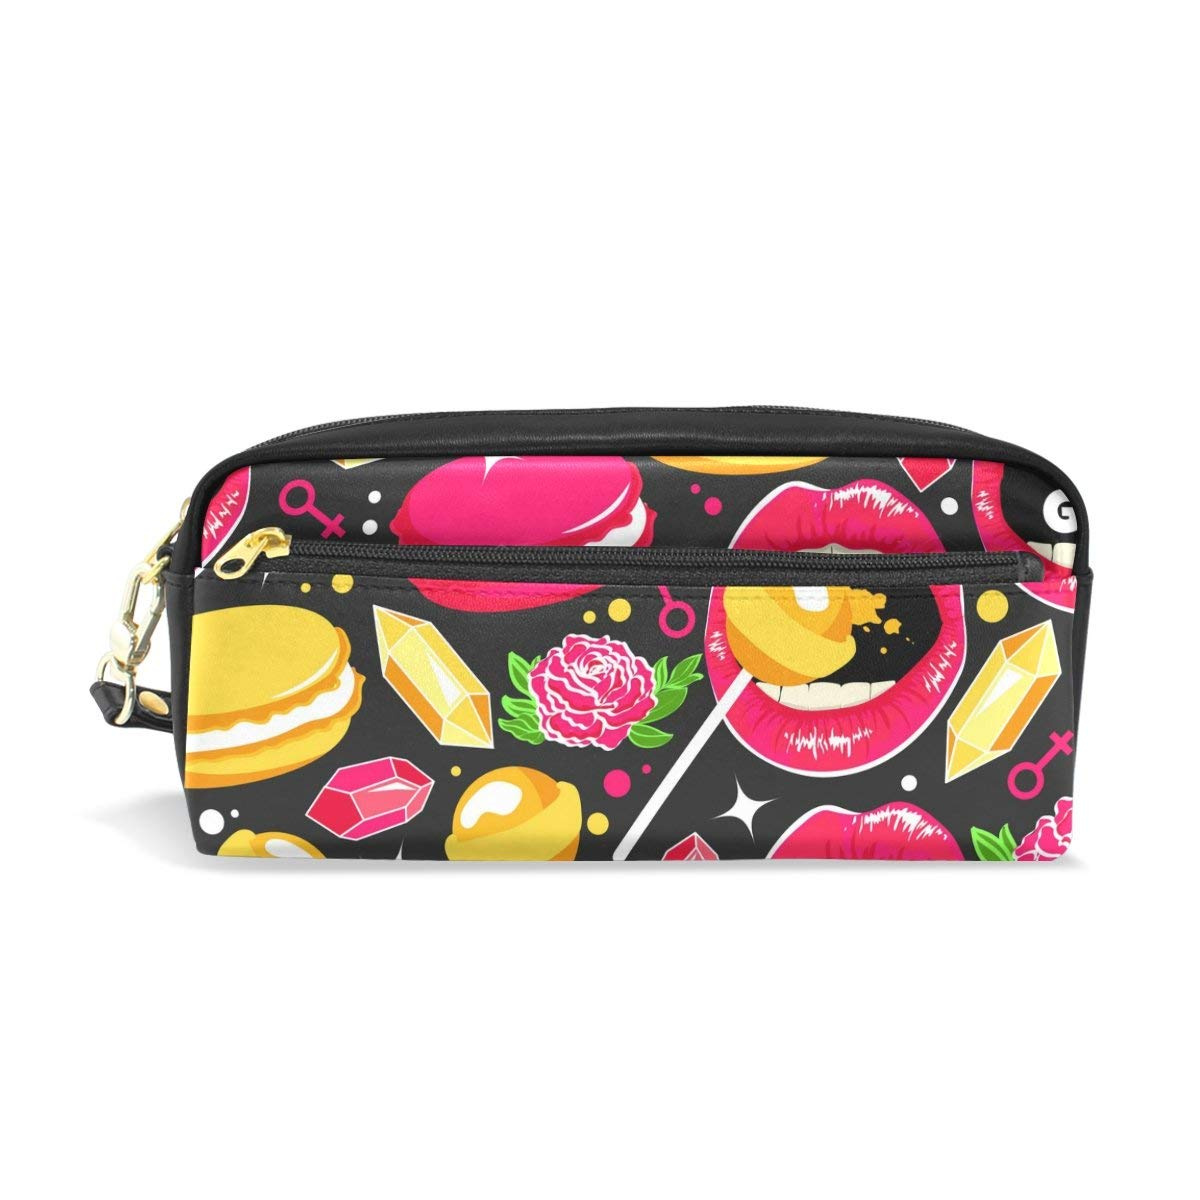 5f3c0974ef82 Vantaso PU Leather Pencil Case Bag Love Pink Lips Lolly with Cakes ...